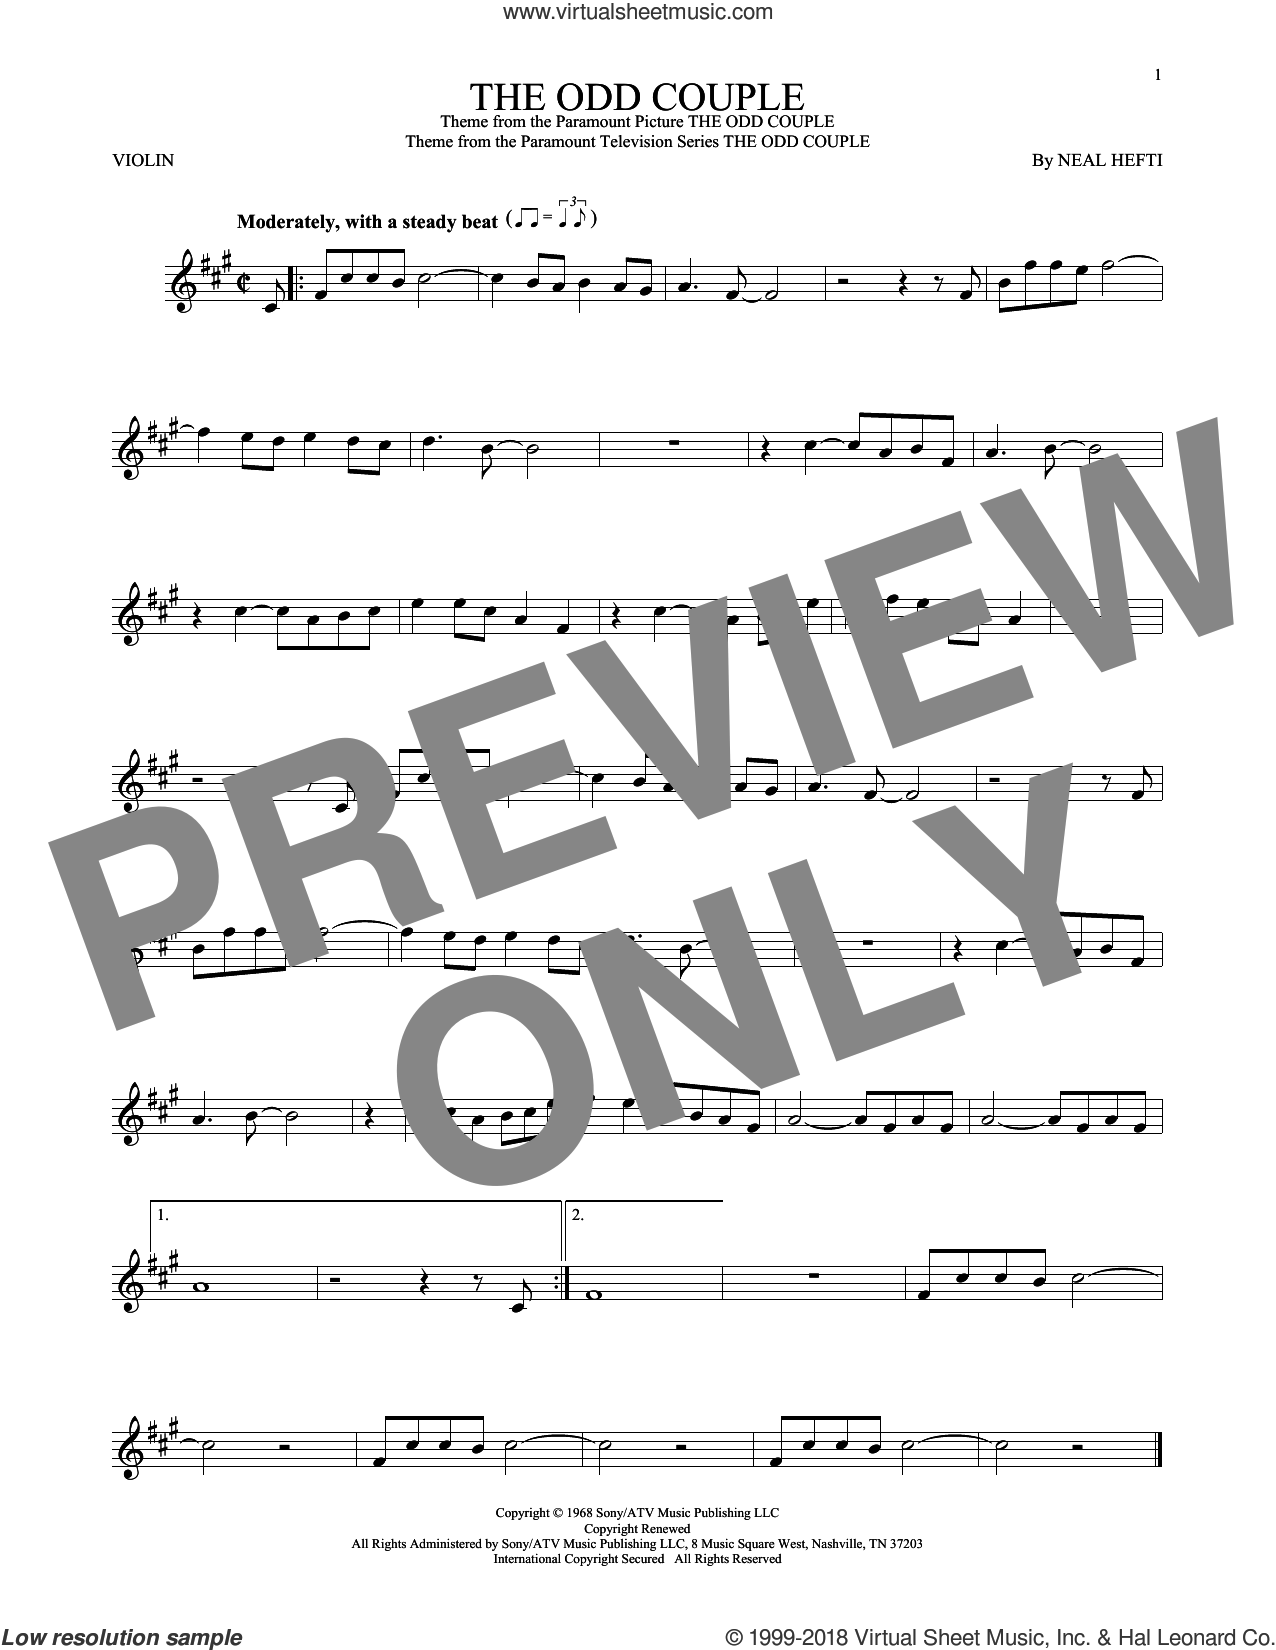 The Odd Couple sheet music for violin solo by Sammy Cahn and Neal Hefti, intermediate skill level